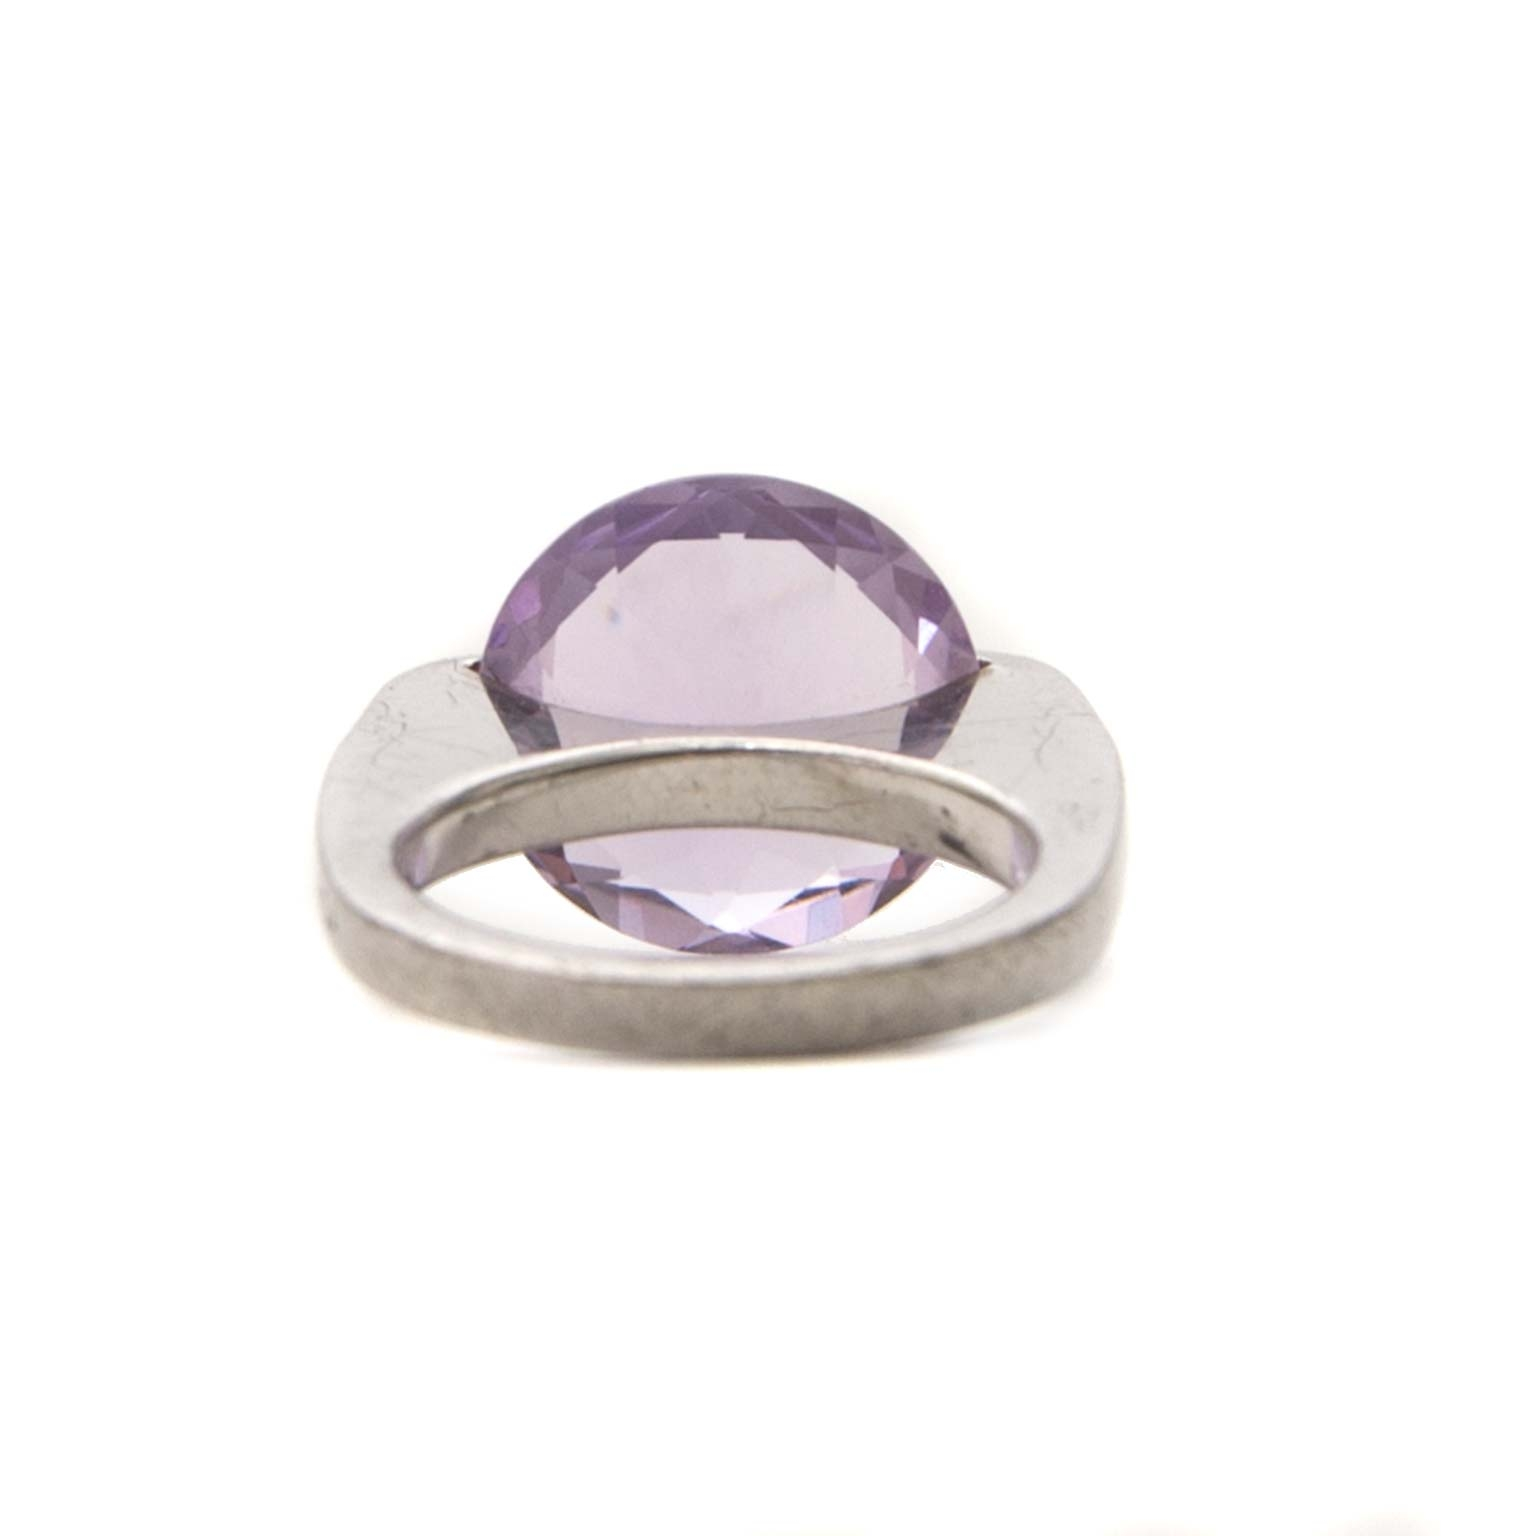 pianegonda silver ring with purple stone now for sale at labellov vintage fashion webshop belgium